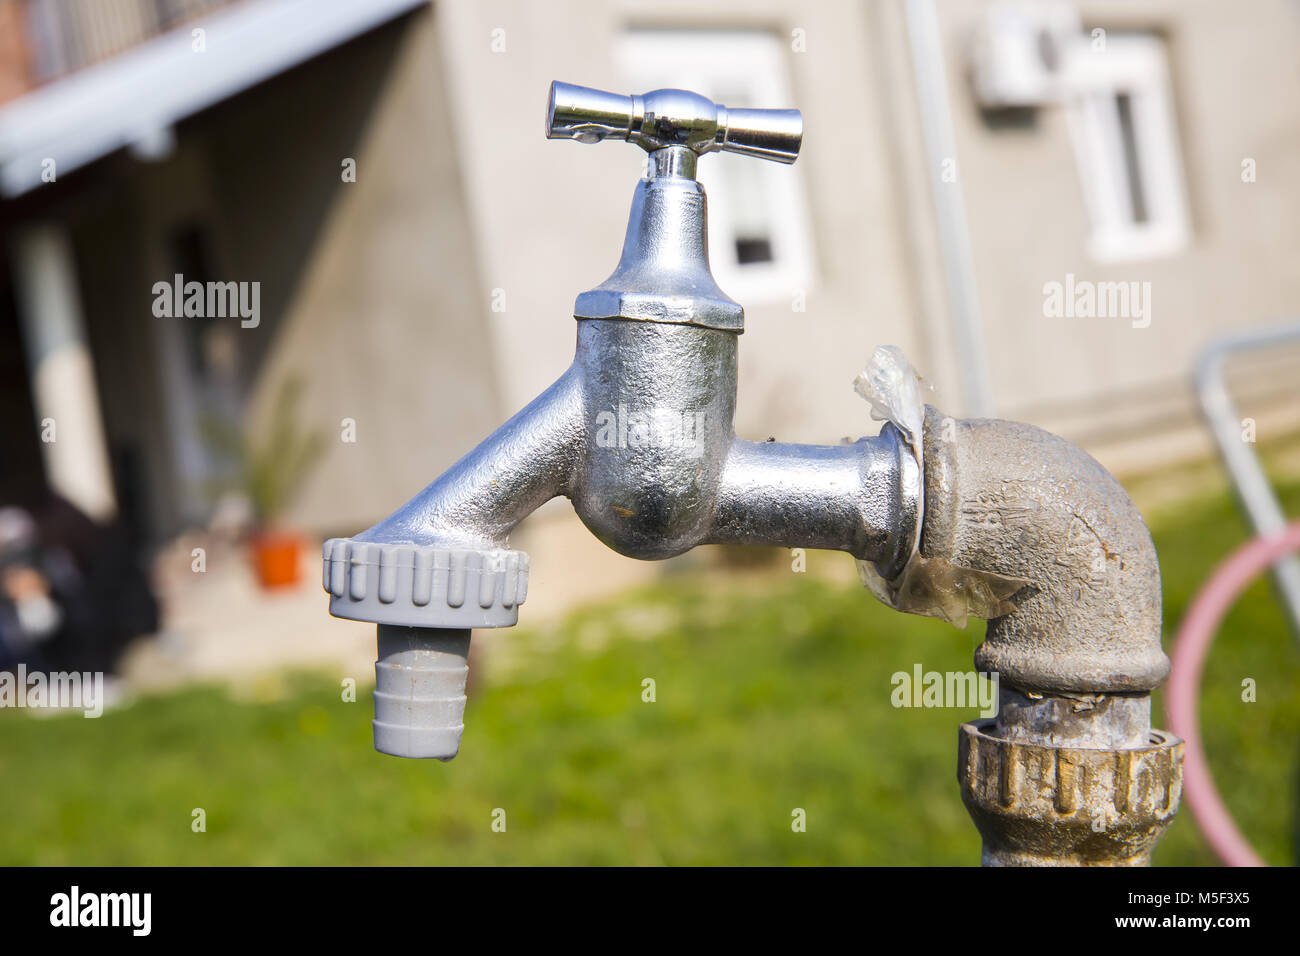 Wasting water - water drop from water tap - Stock Image